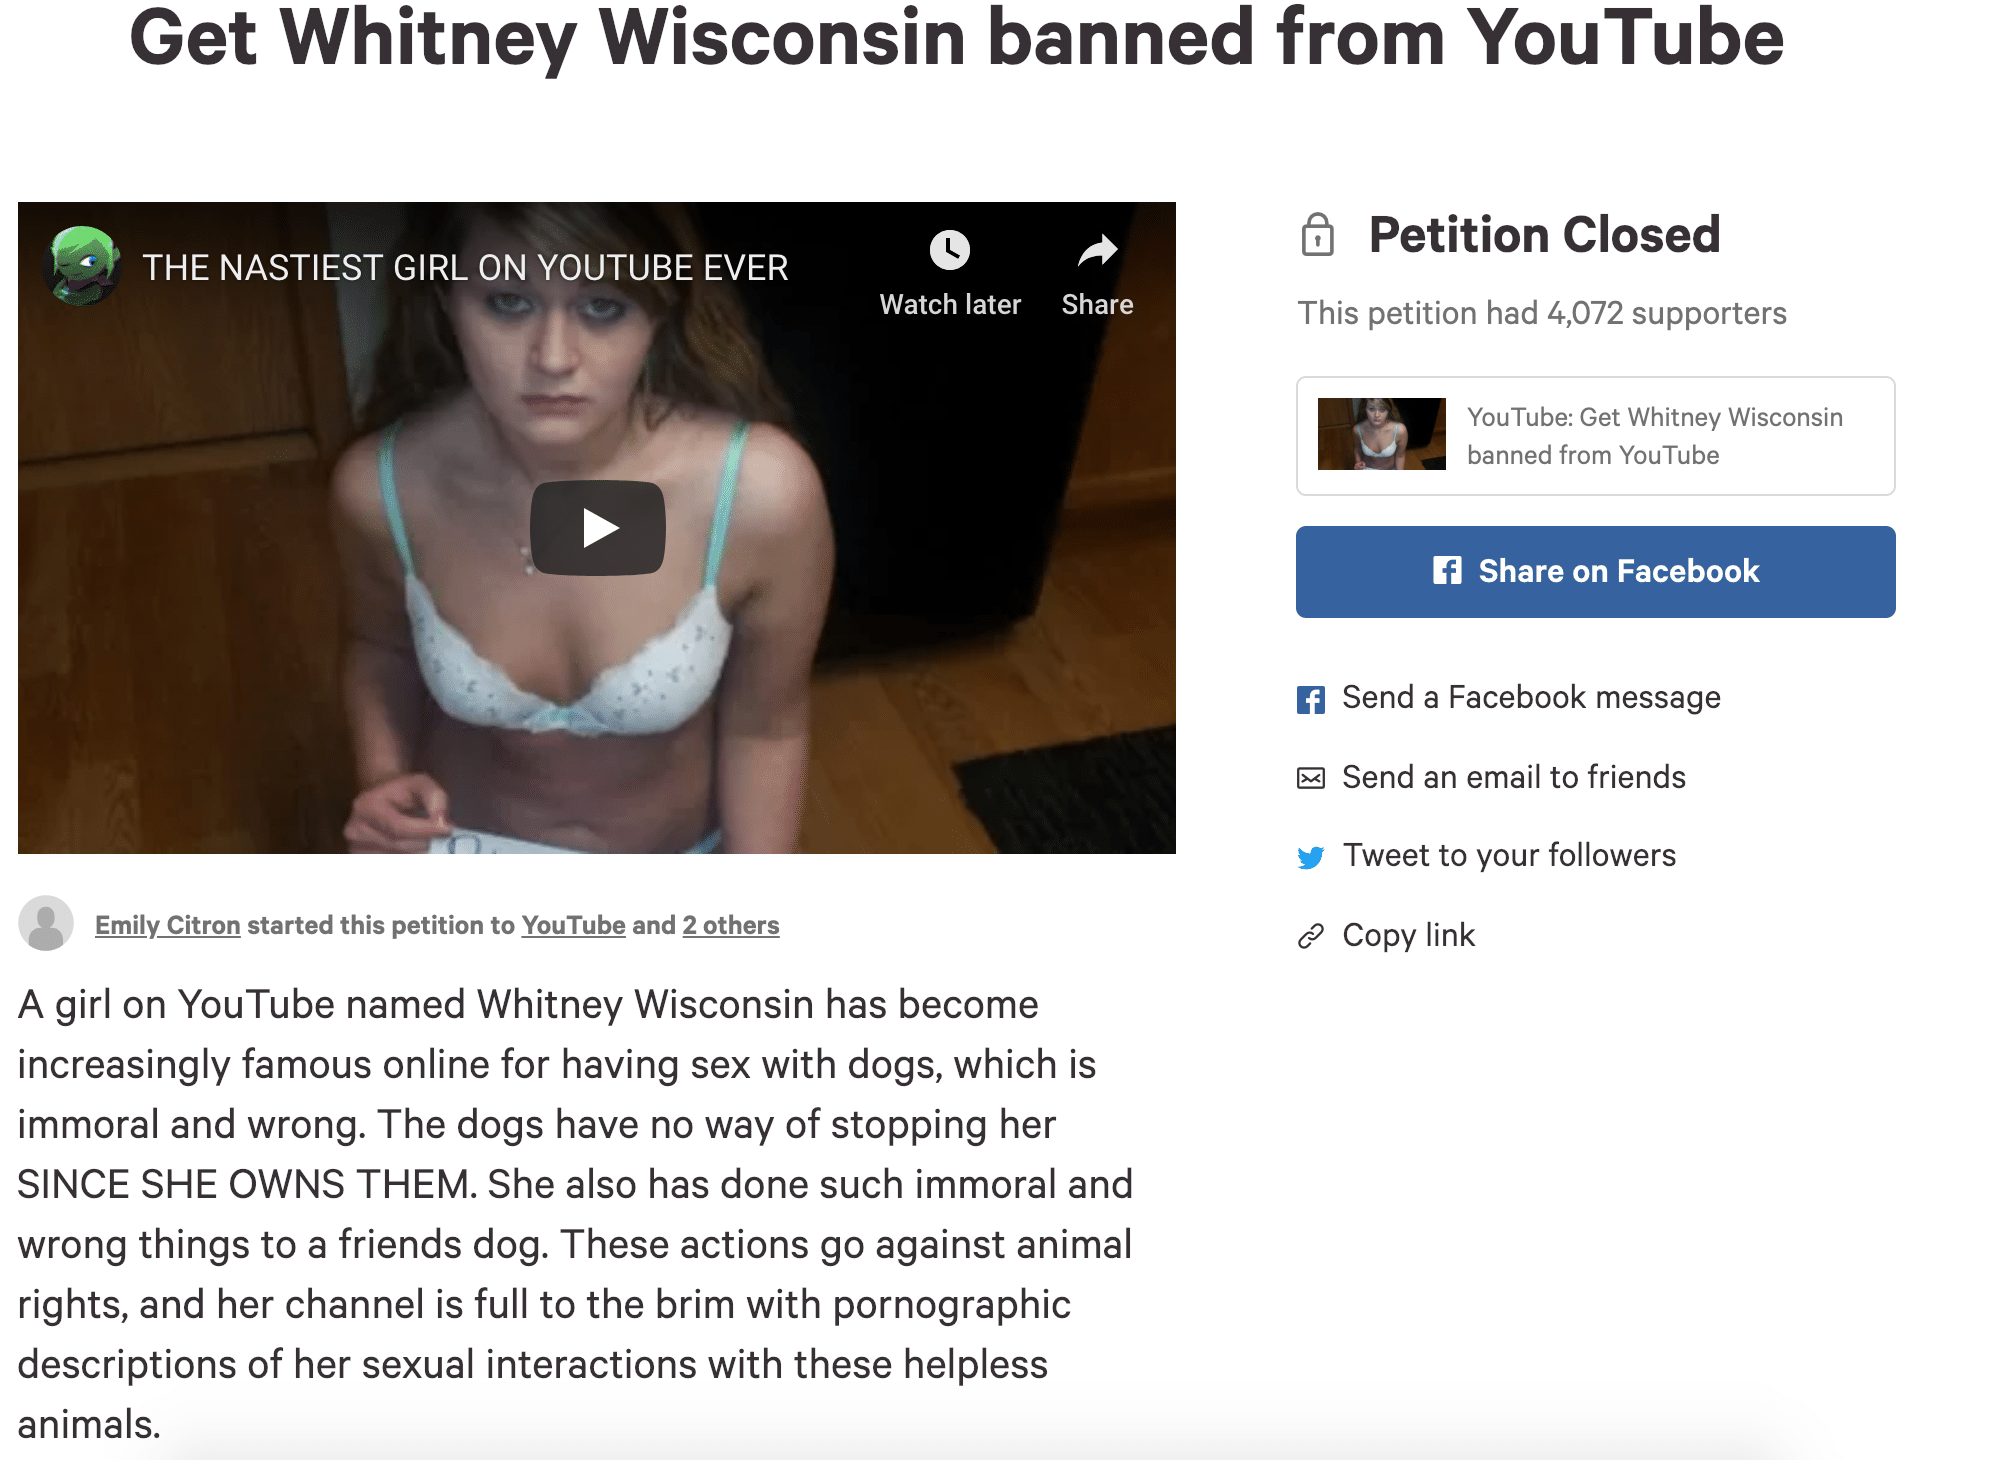 A petition was created to get Whitney Wisconsin removed from YouTube